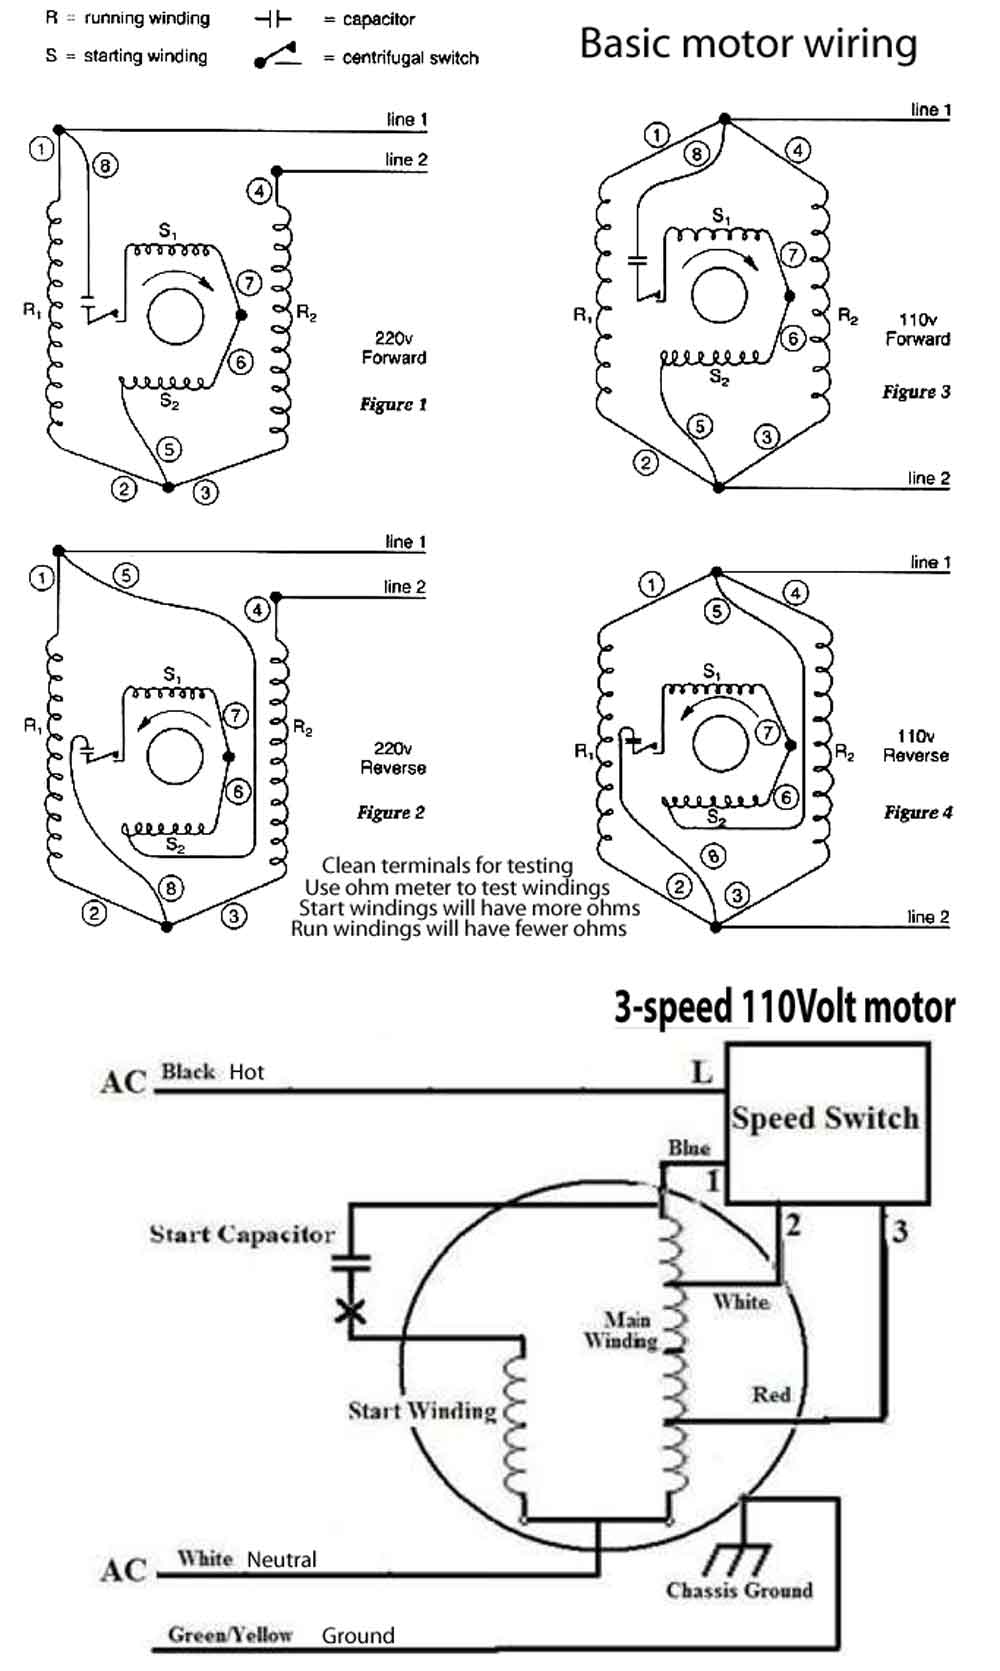 how to wire 3-speed fan switch, Wiring diagram